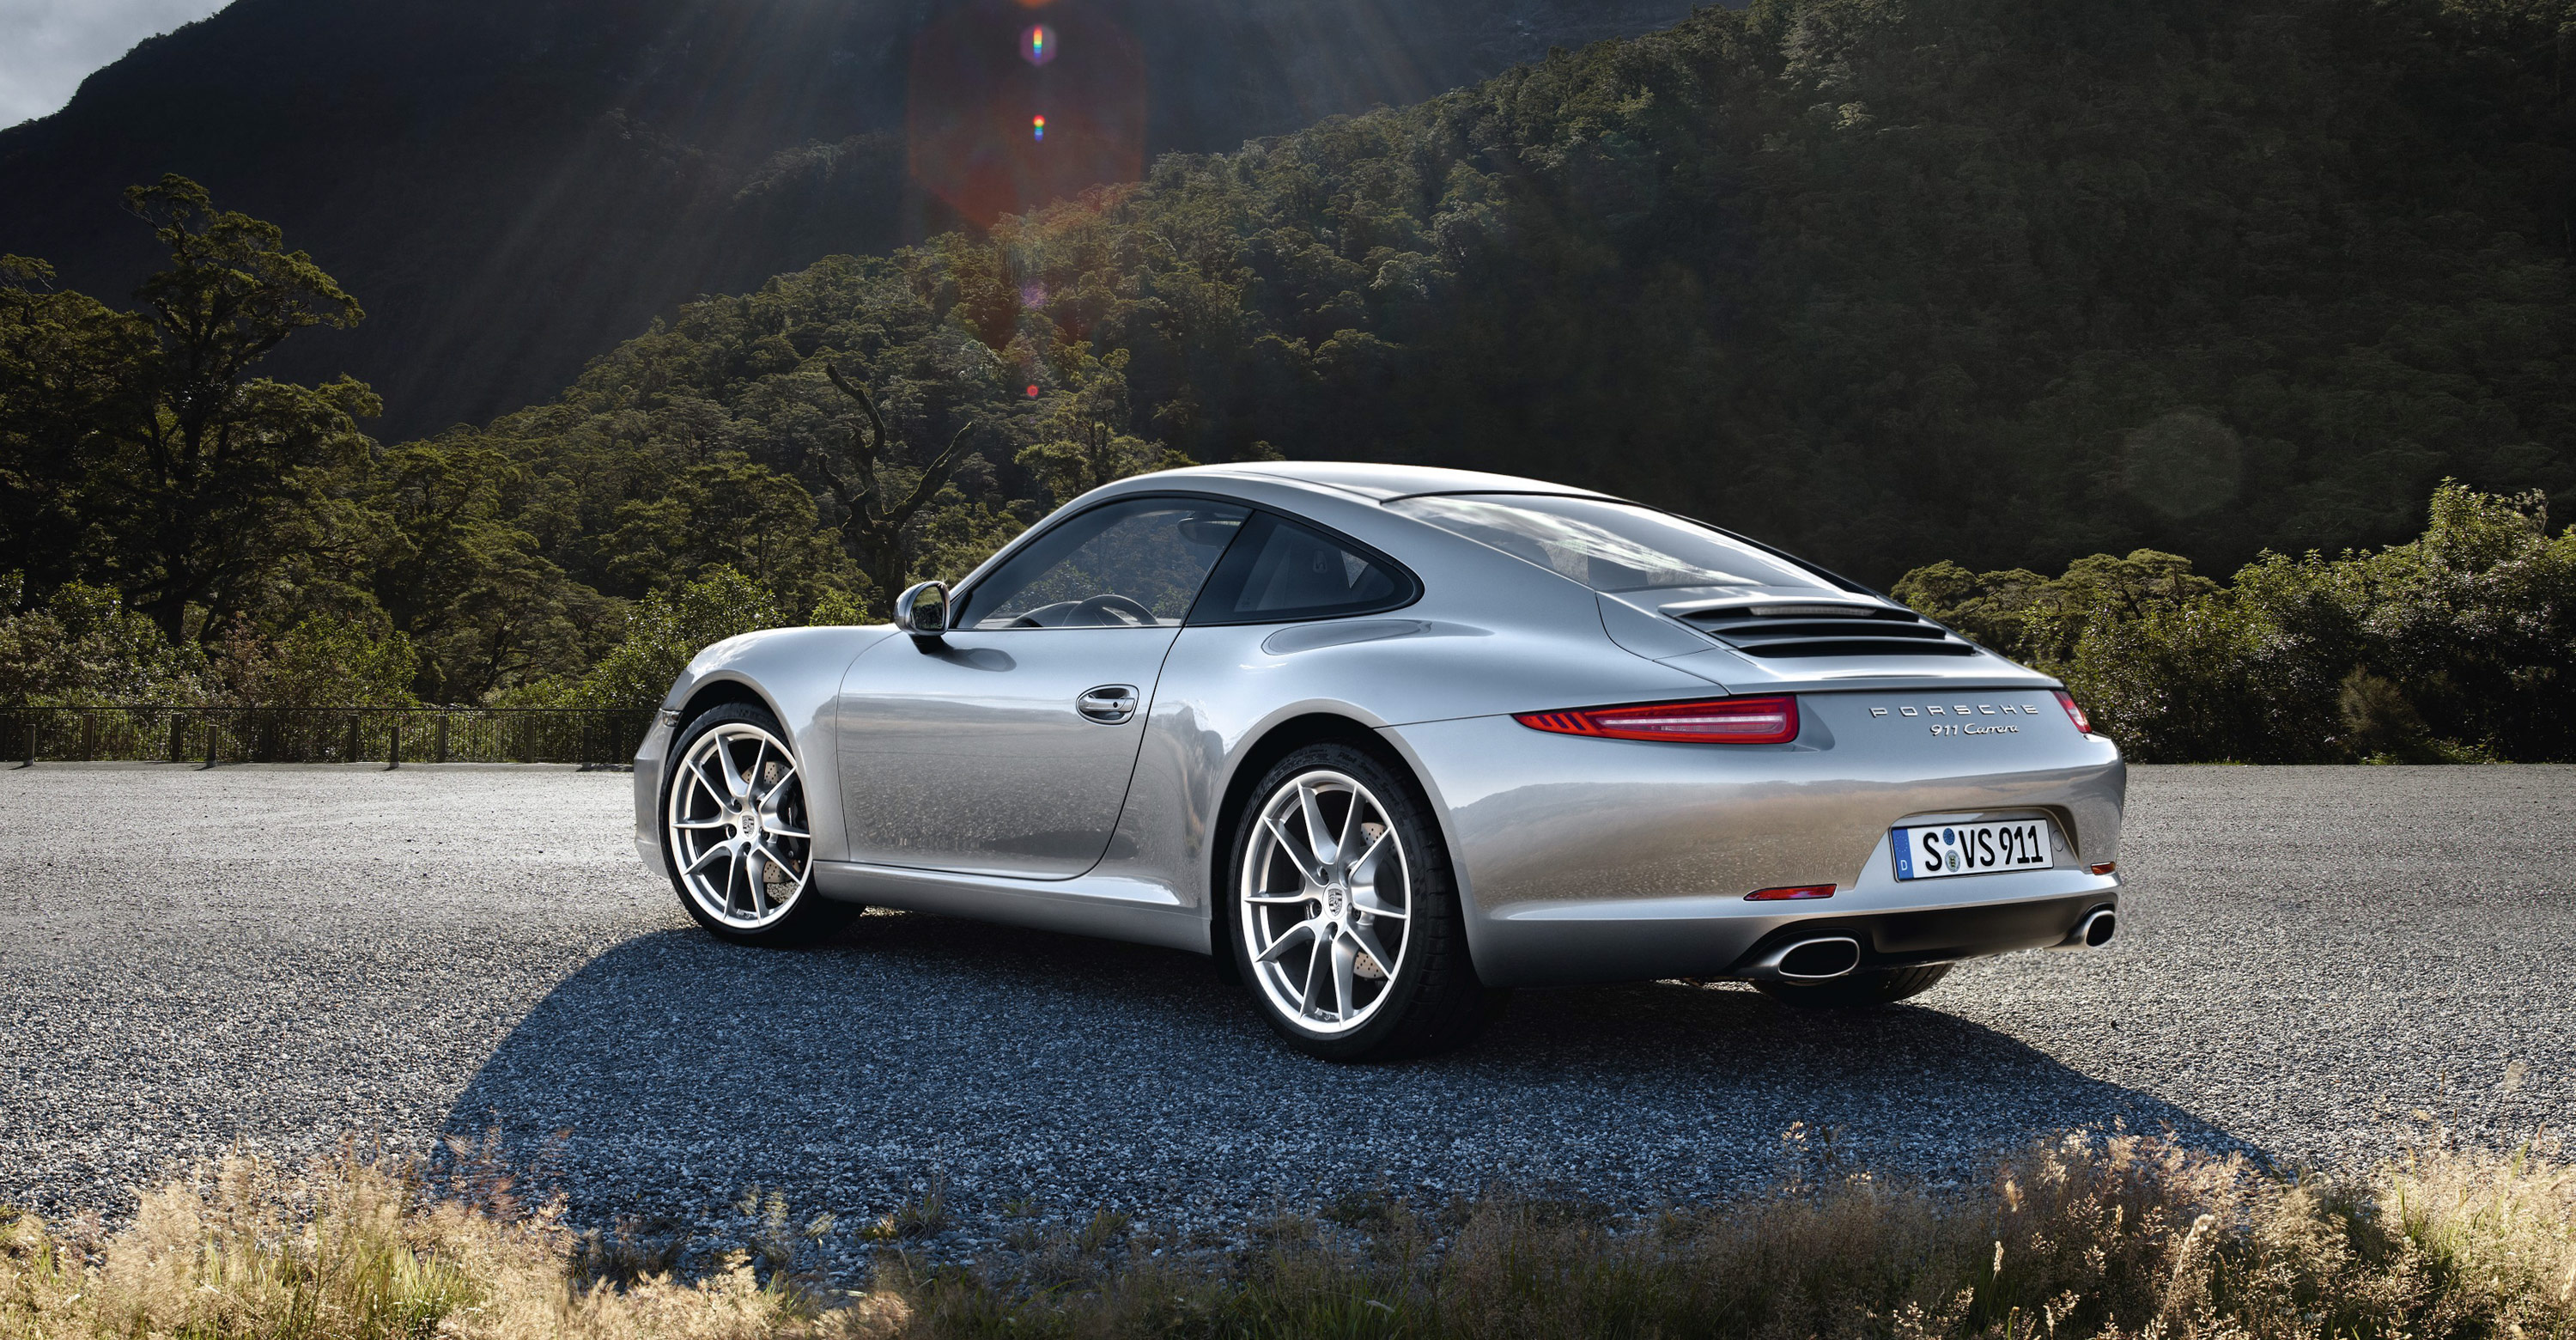 The New Porsche 911 2012 Is Just Sublime Design Sojourn